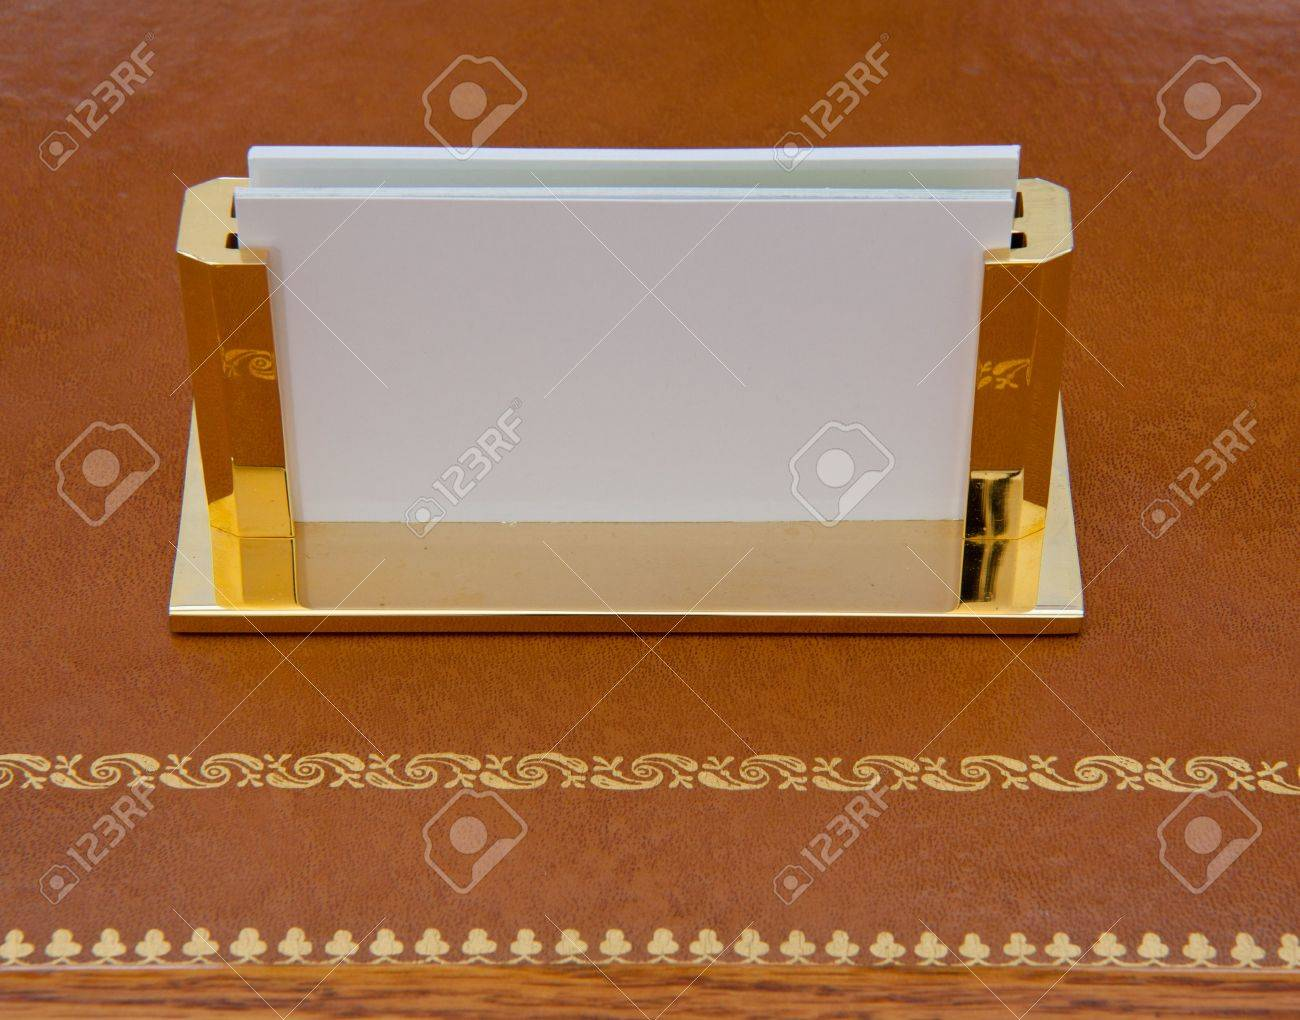 Brass business card holder on a leather desk with gold edging Stock Photo - 7282295